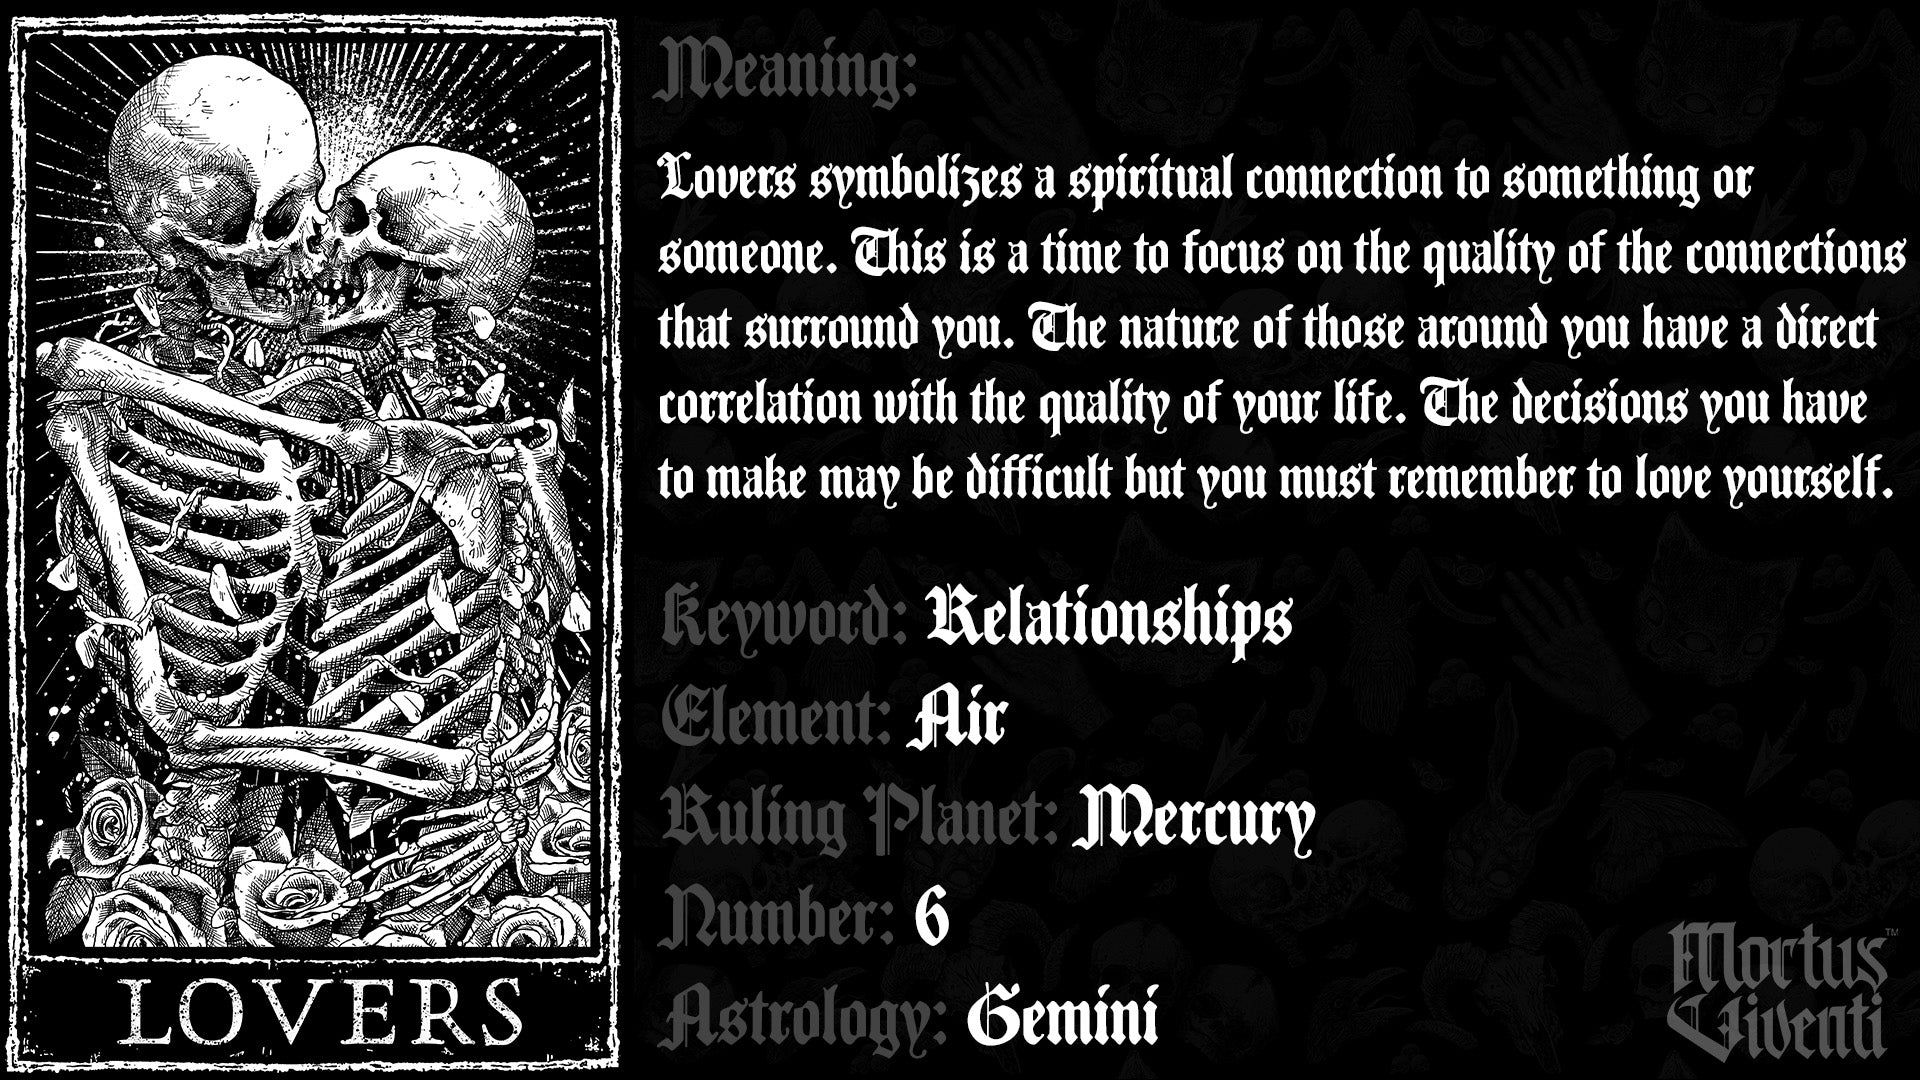 Lovers Tarot Card Meaning Mortus Viventi